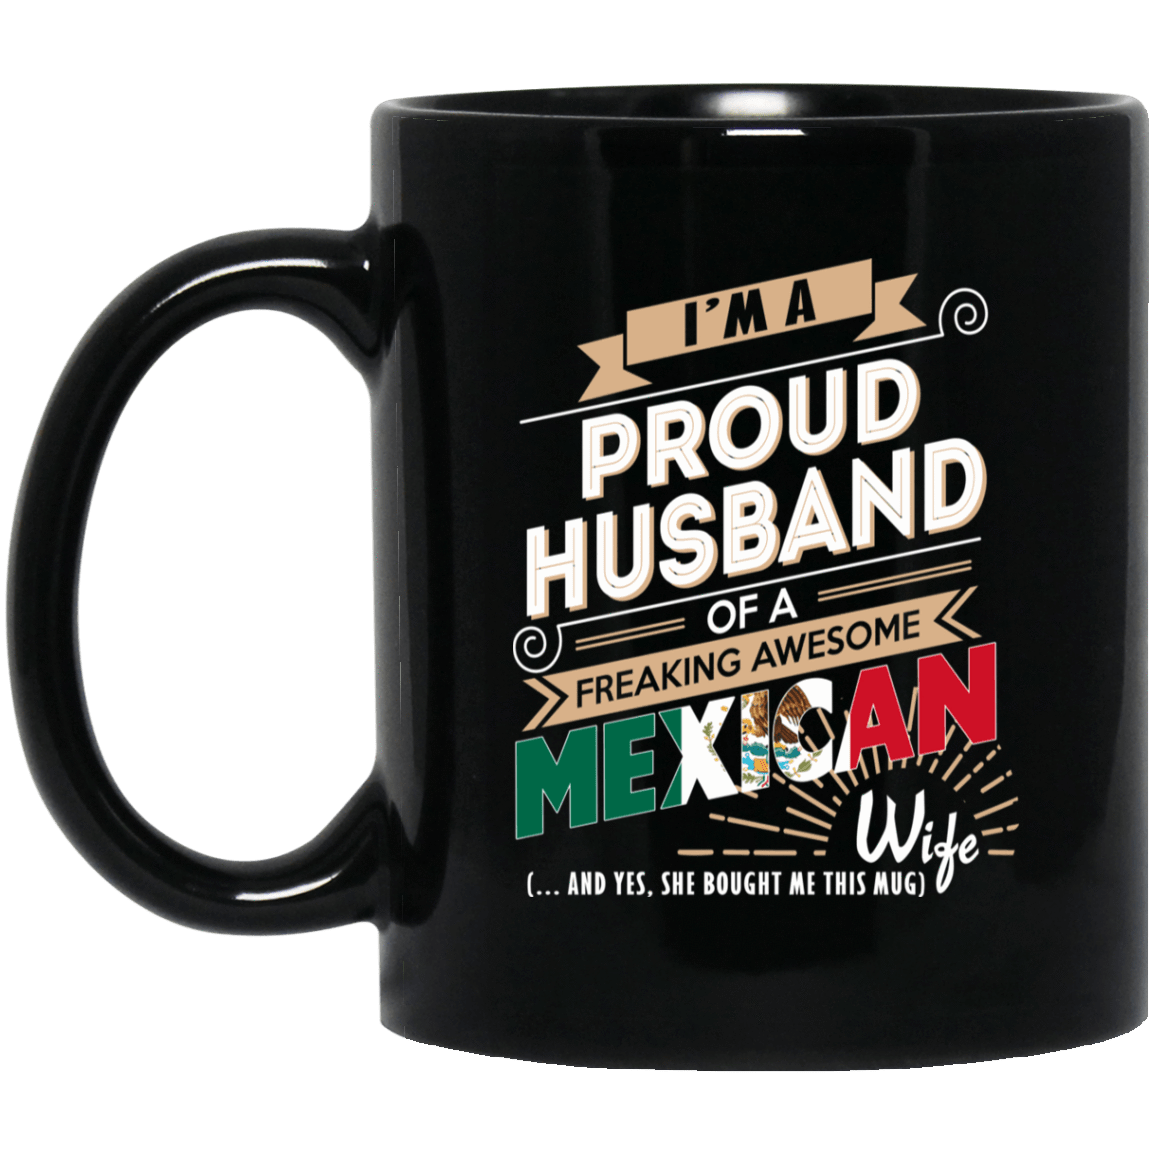 Proud Husband Of A Freaking Awesome Mexican Wife Mug 1065-10181-72136515-49307 - Tee Ript